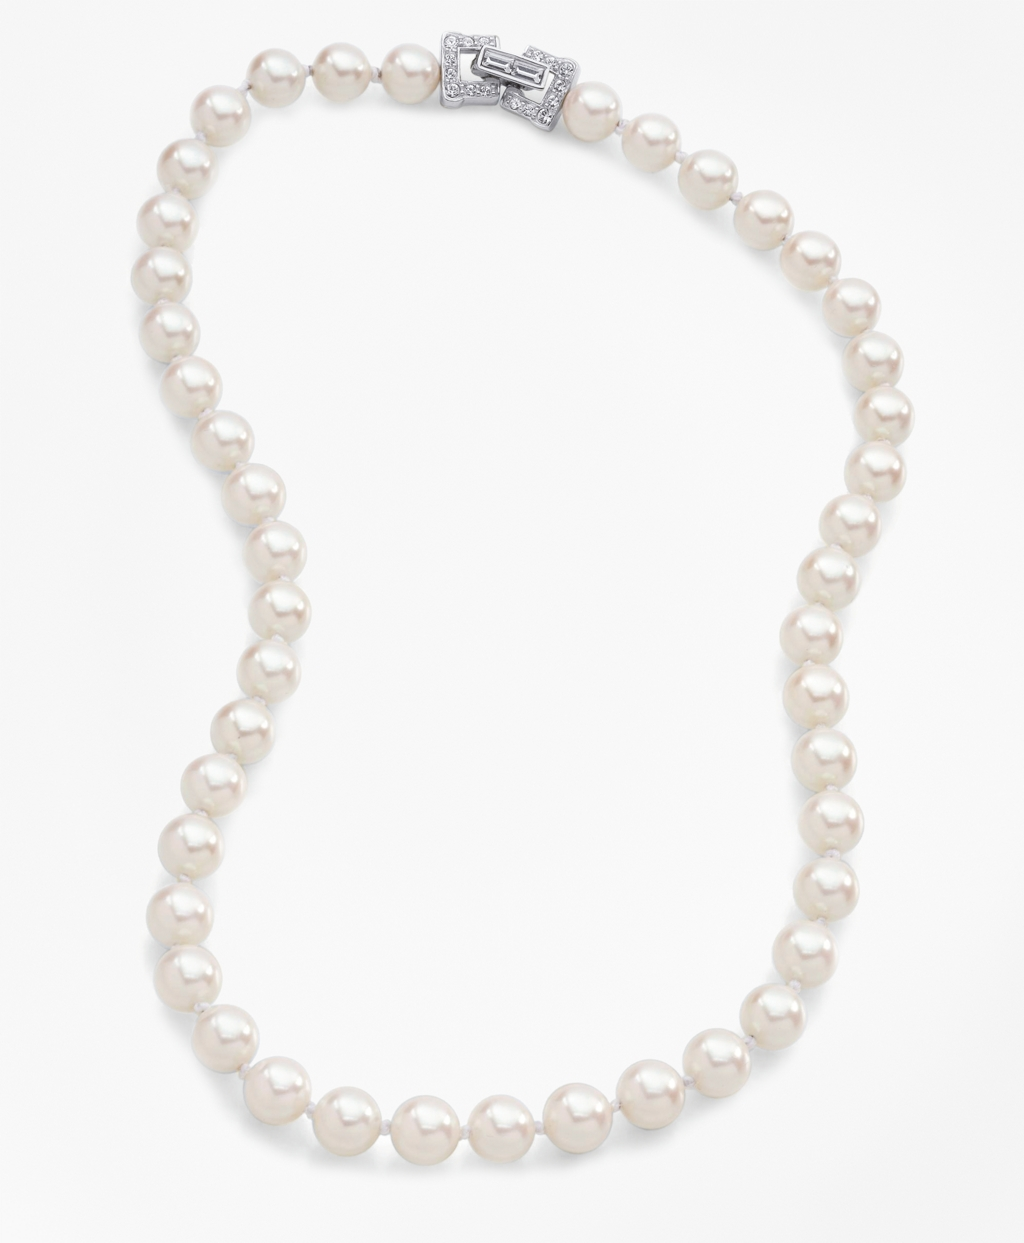 1950s Jewelry Styles and History Brooks Brothers Womens Glass Pearl Necklace $298.00 AT vintagedancer.com